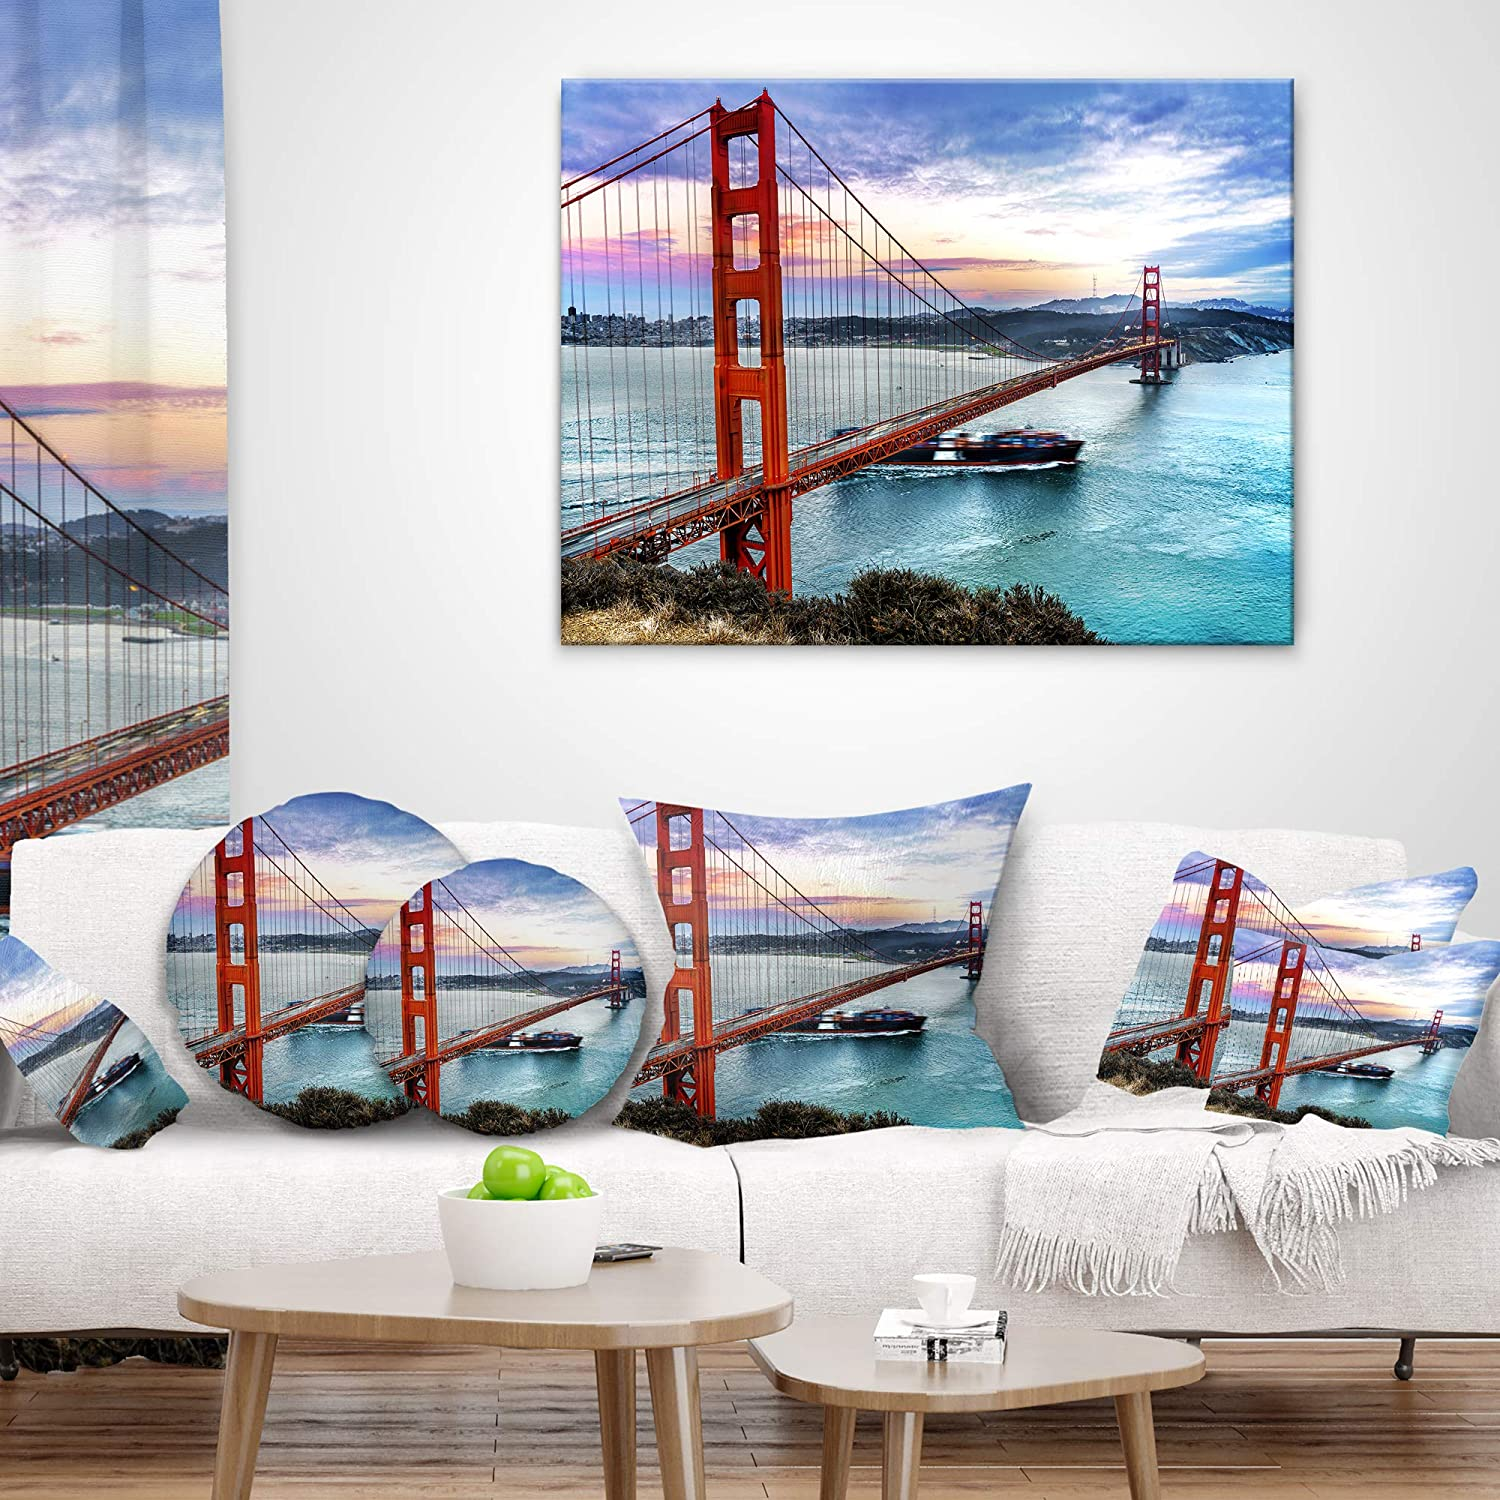 Insert Printed On Both Side X 26 In Sofa Throw Pillow 26 In In Designart Cu10037 26 26 Golden Gate In San Francisco Sea Bridge Cushion Cover For Living Room Home Kitchen Decorative